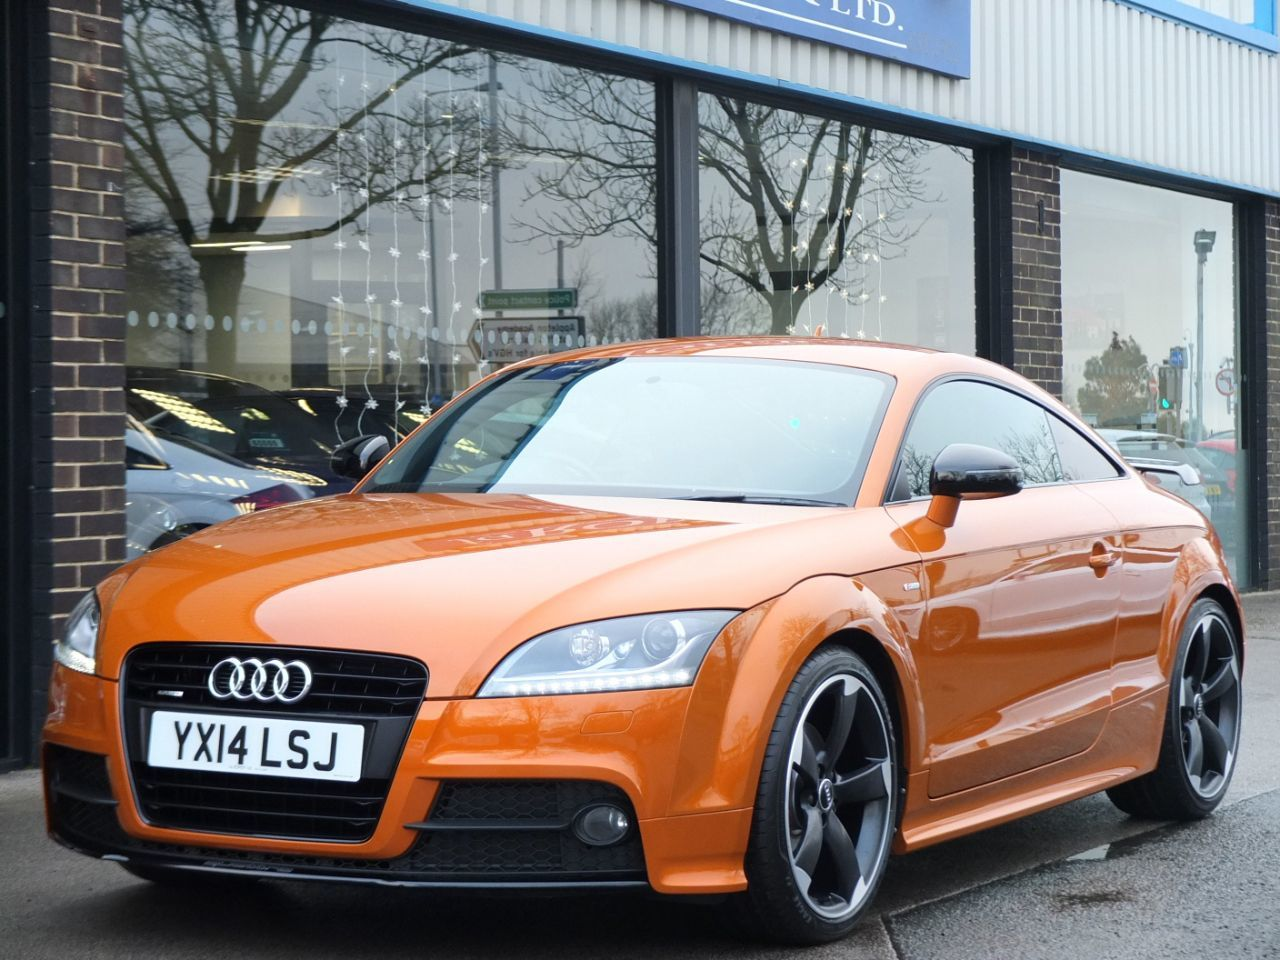 Audi TT Coupe 2.0 TDI quattro Amplifed Black Edition S tronic Coupe Diesel Samoa Orange MetallicAudi TT Coupe 2.0 TDI quattro Amplifed Black Edition S tronic Coupe Diesel Samoa Orange Metallic at fa Roper Ltd Bradford